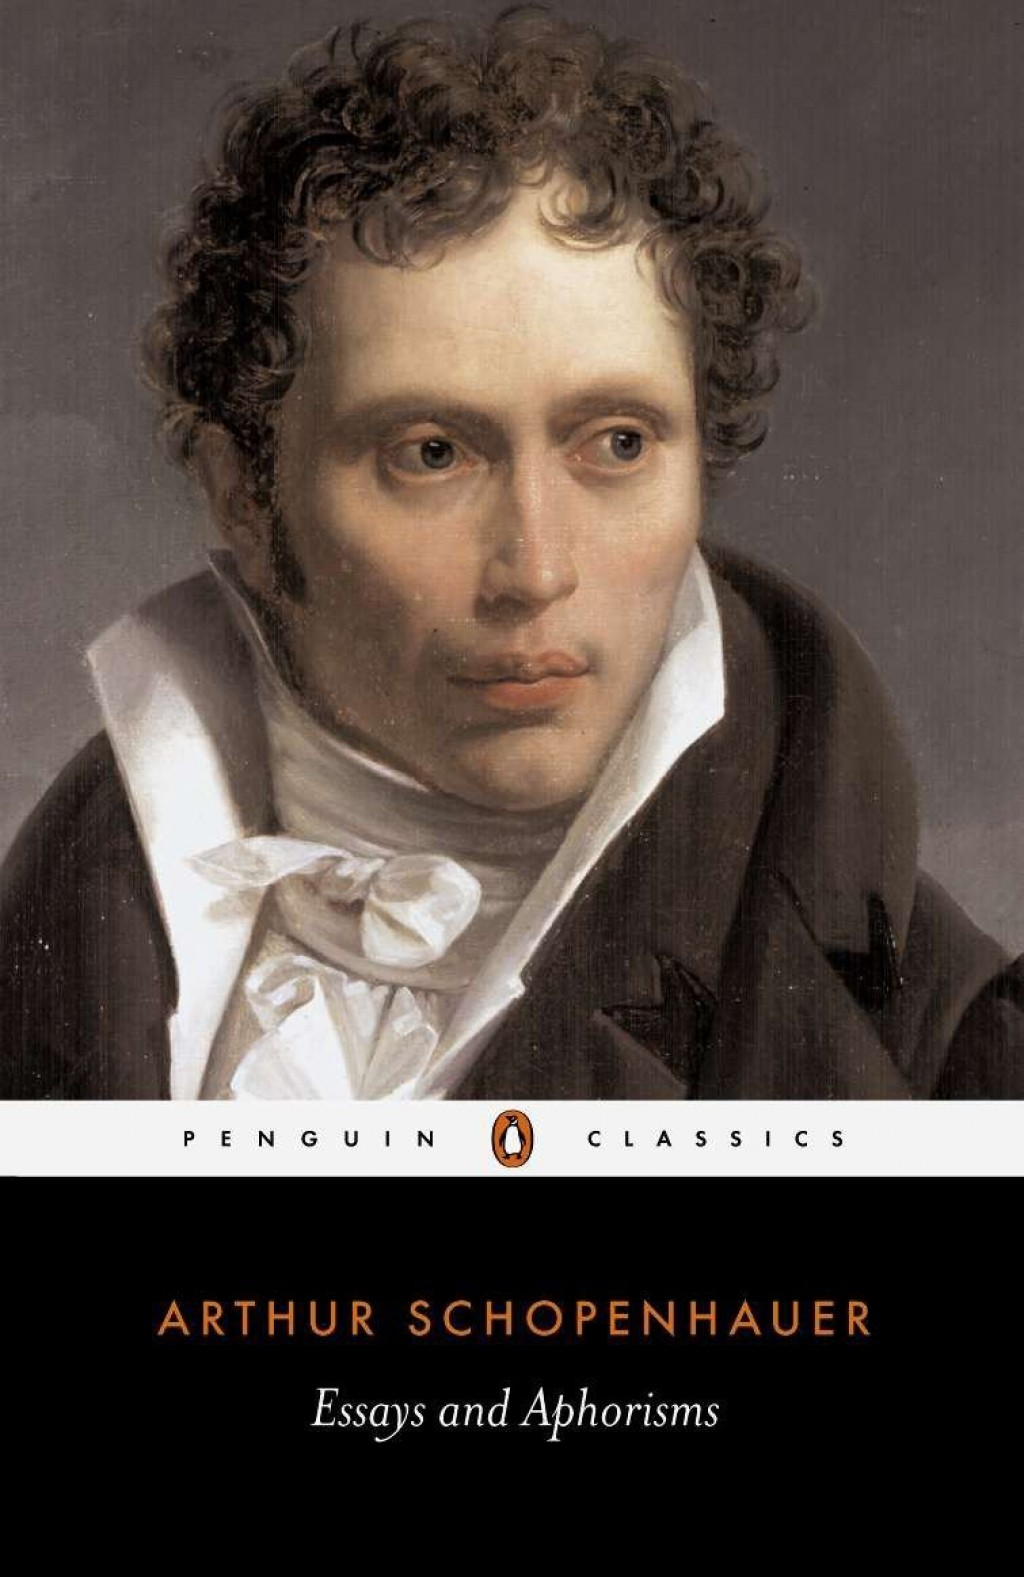 001 Essay Example 61iwcxsw0tl Essays And Frightening Aphorisms By Arthur Schopenhauer Pdf Large